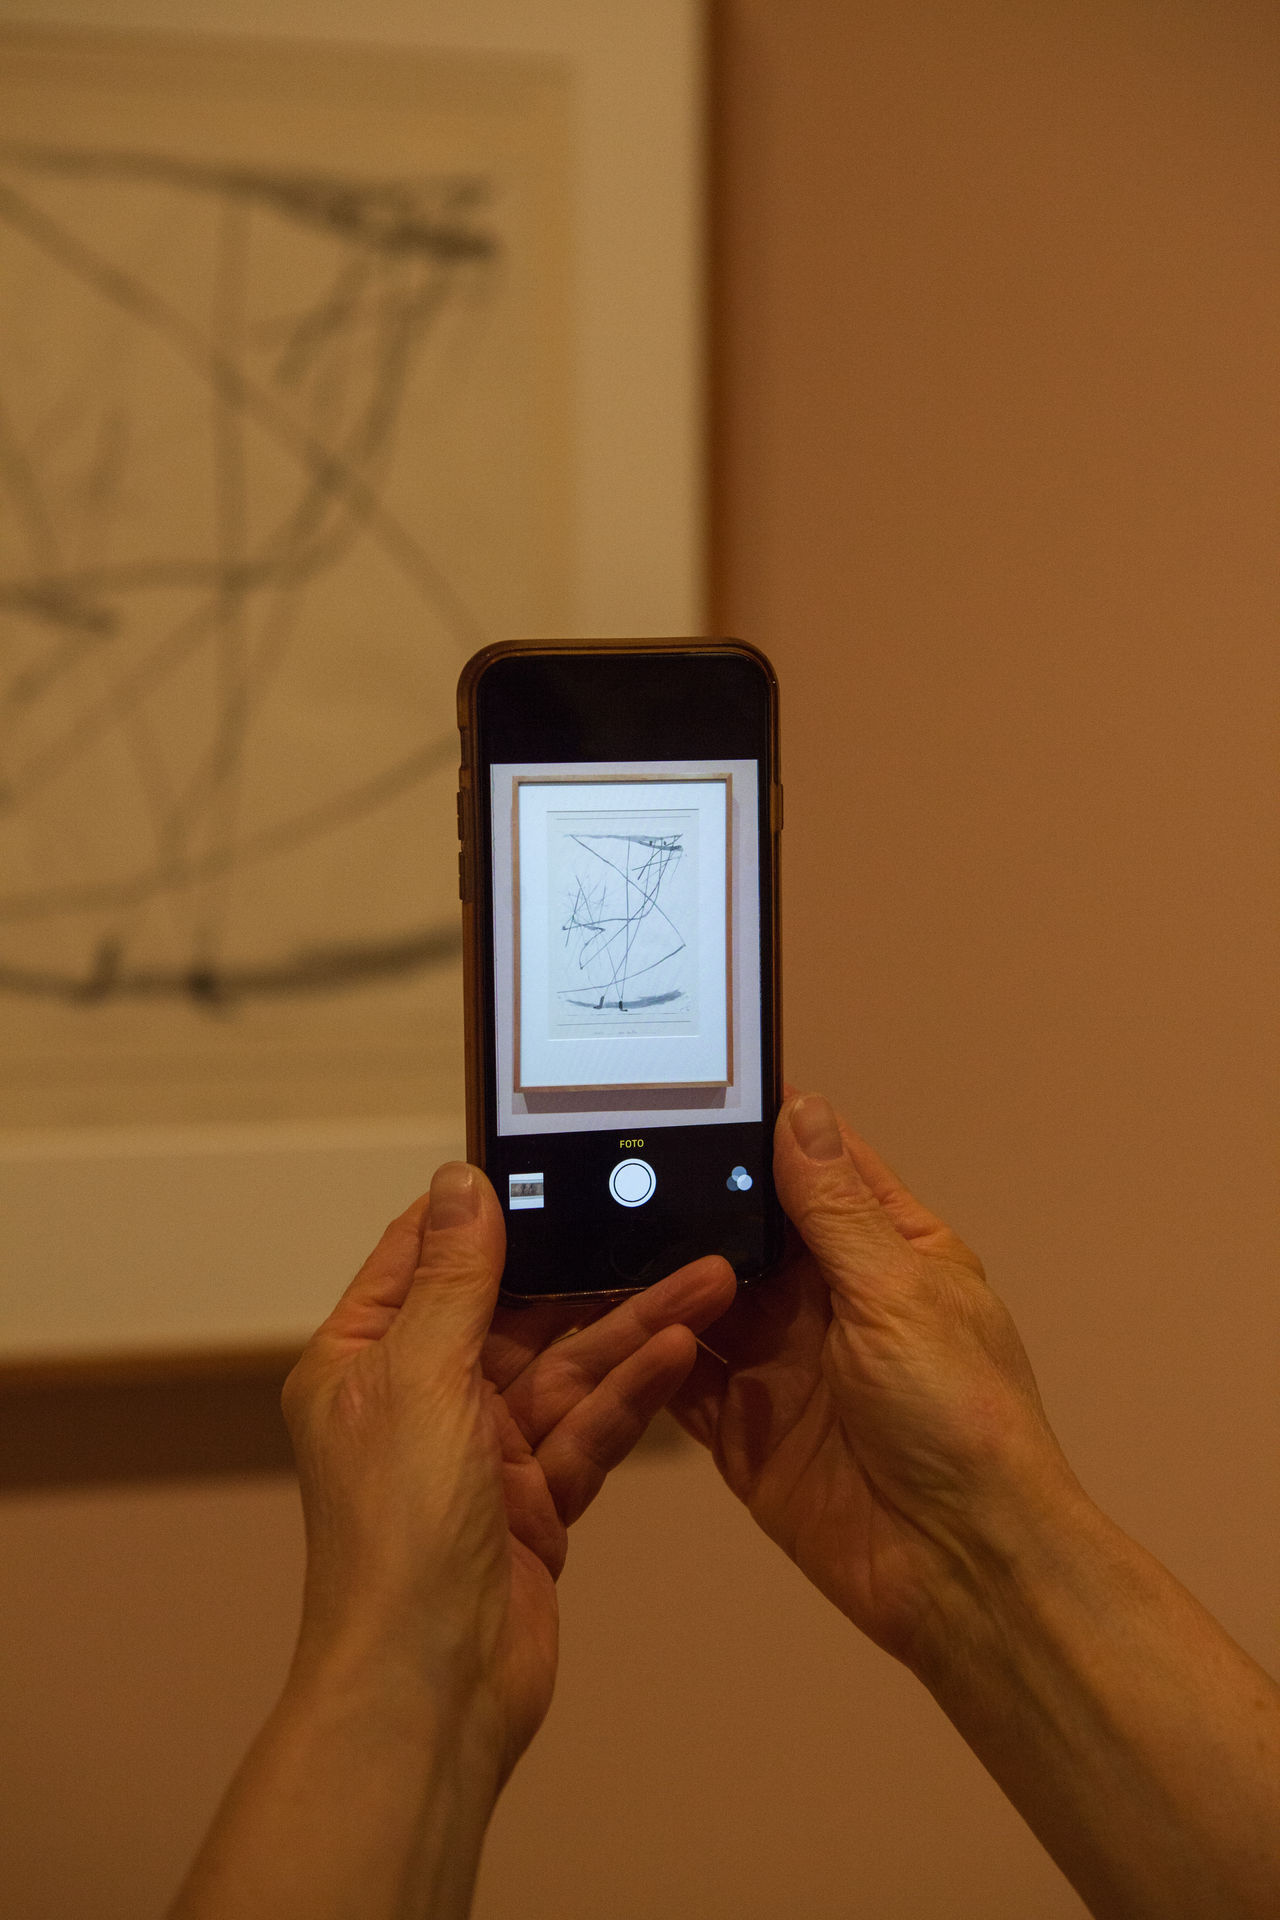 Art Clicking Communication Connection Drawing Frame Frame It! Hands Mobile Phone Museum Part Of Paul Klee Photographing Photography Themes Smart Phone Smartphonephotography Taking Photos Technology Wireless Technology Mobile Conversations Art Is Everywhere